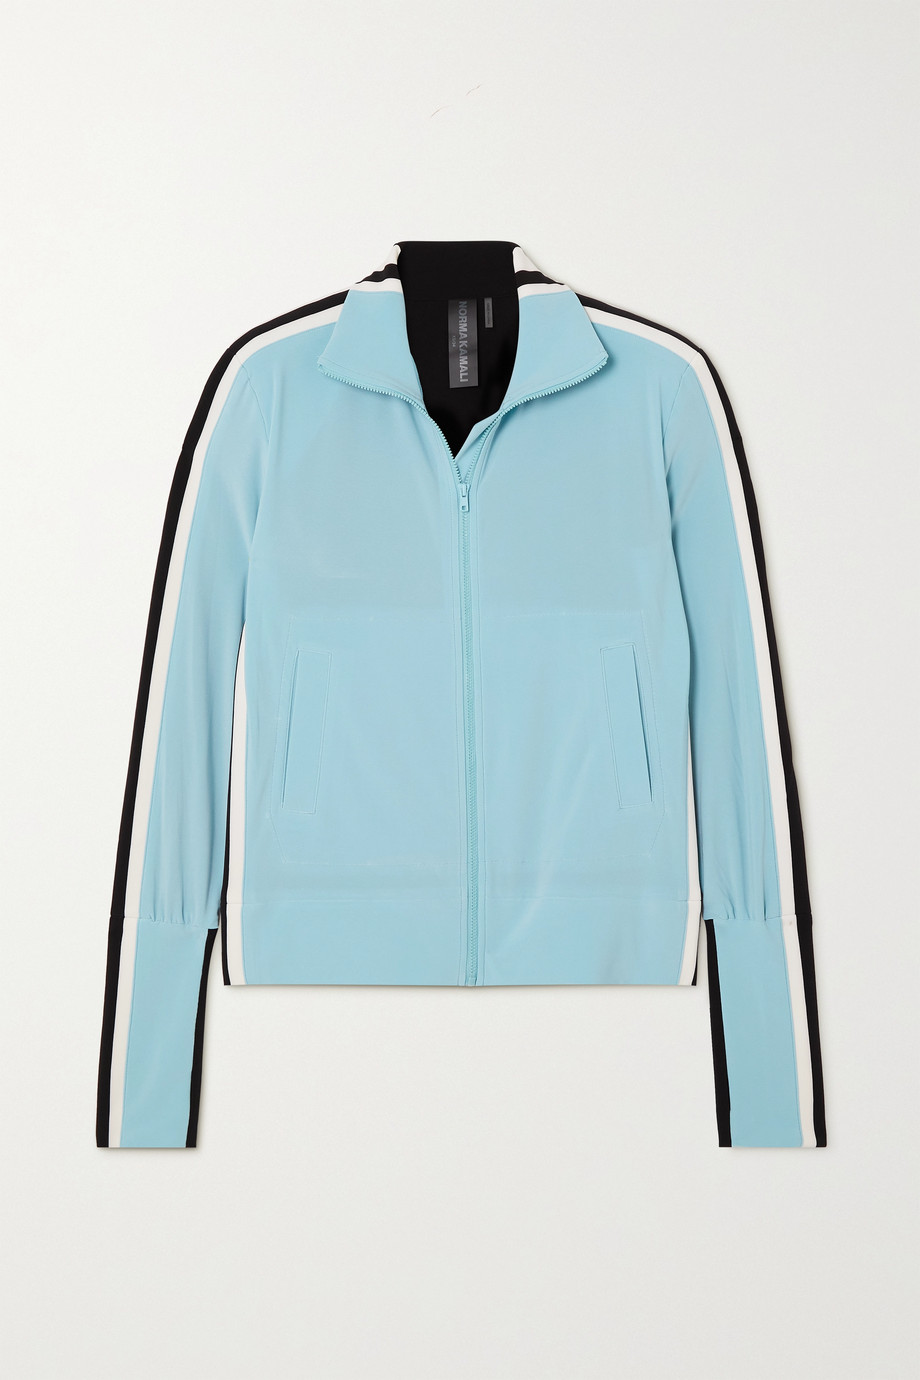 Norma Kamali Color-block stretch-jersey track jacket